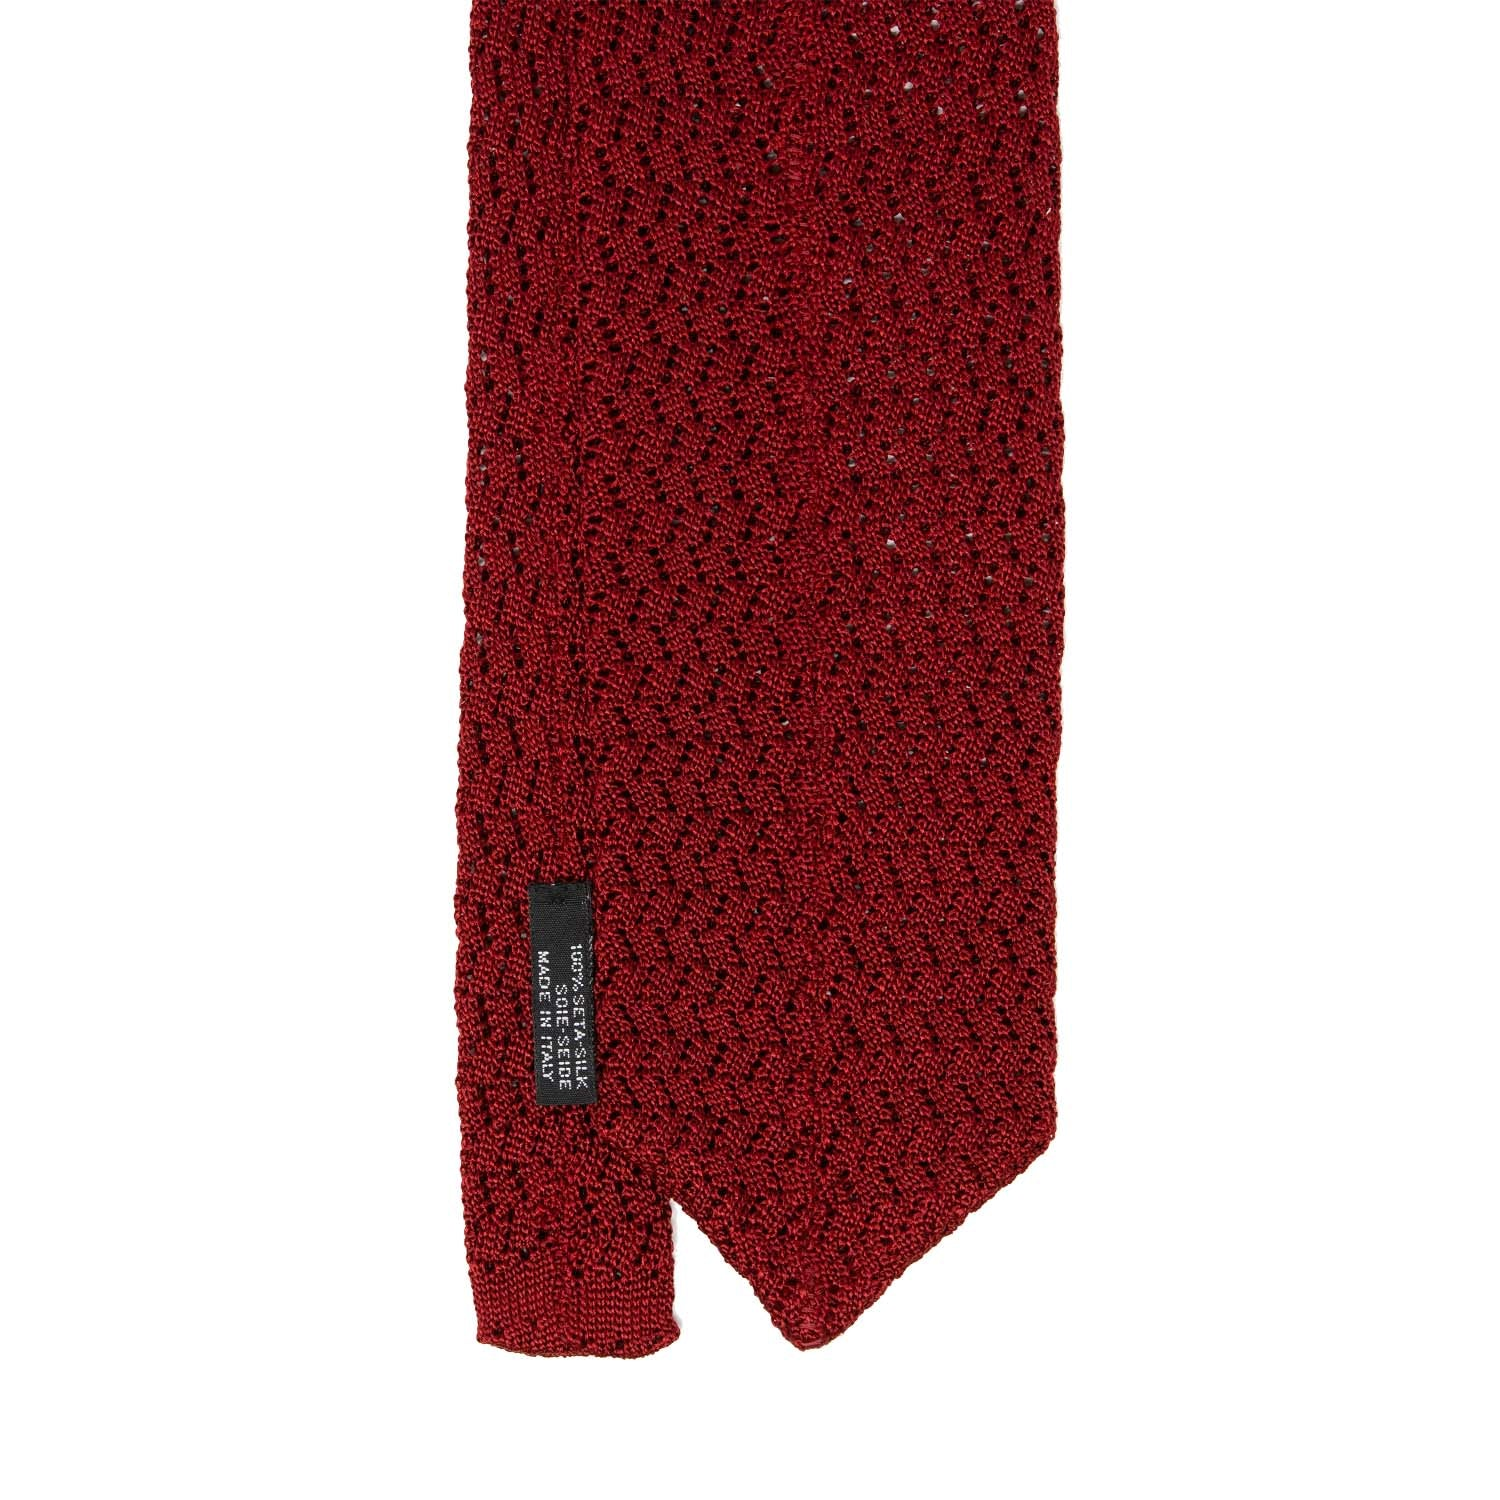 serà fine silk - Red Zig Zag V Point Knitted Tie